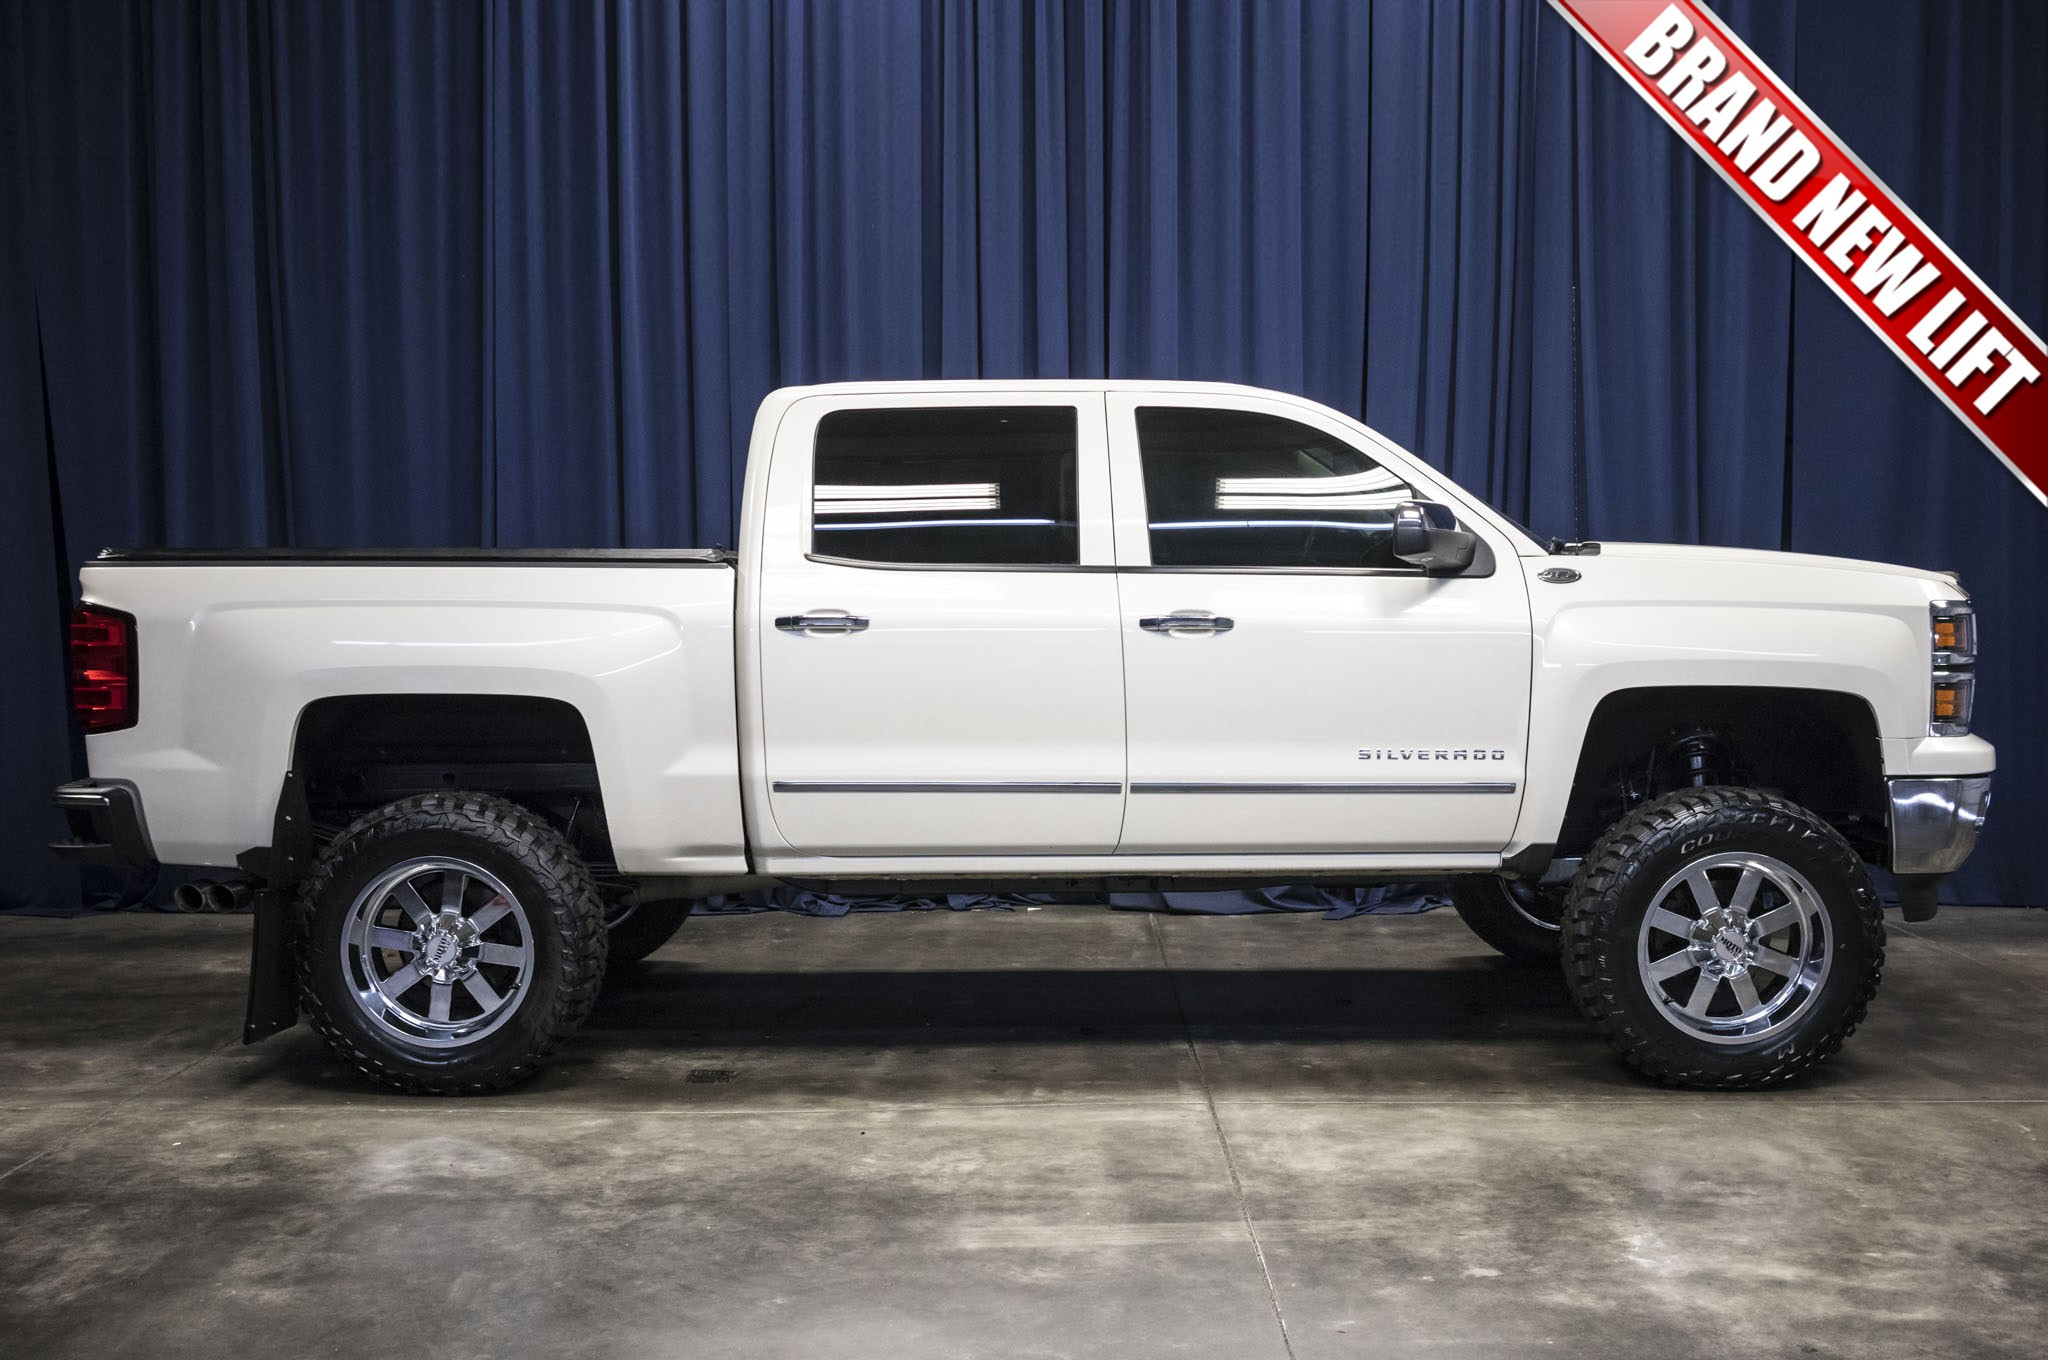 used lifted 2014 chevrolet silverado 1500 ltz 4x4 truck for sale 43822. Black Bedroom Furniture Sets. Home Design Ideas